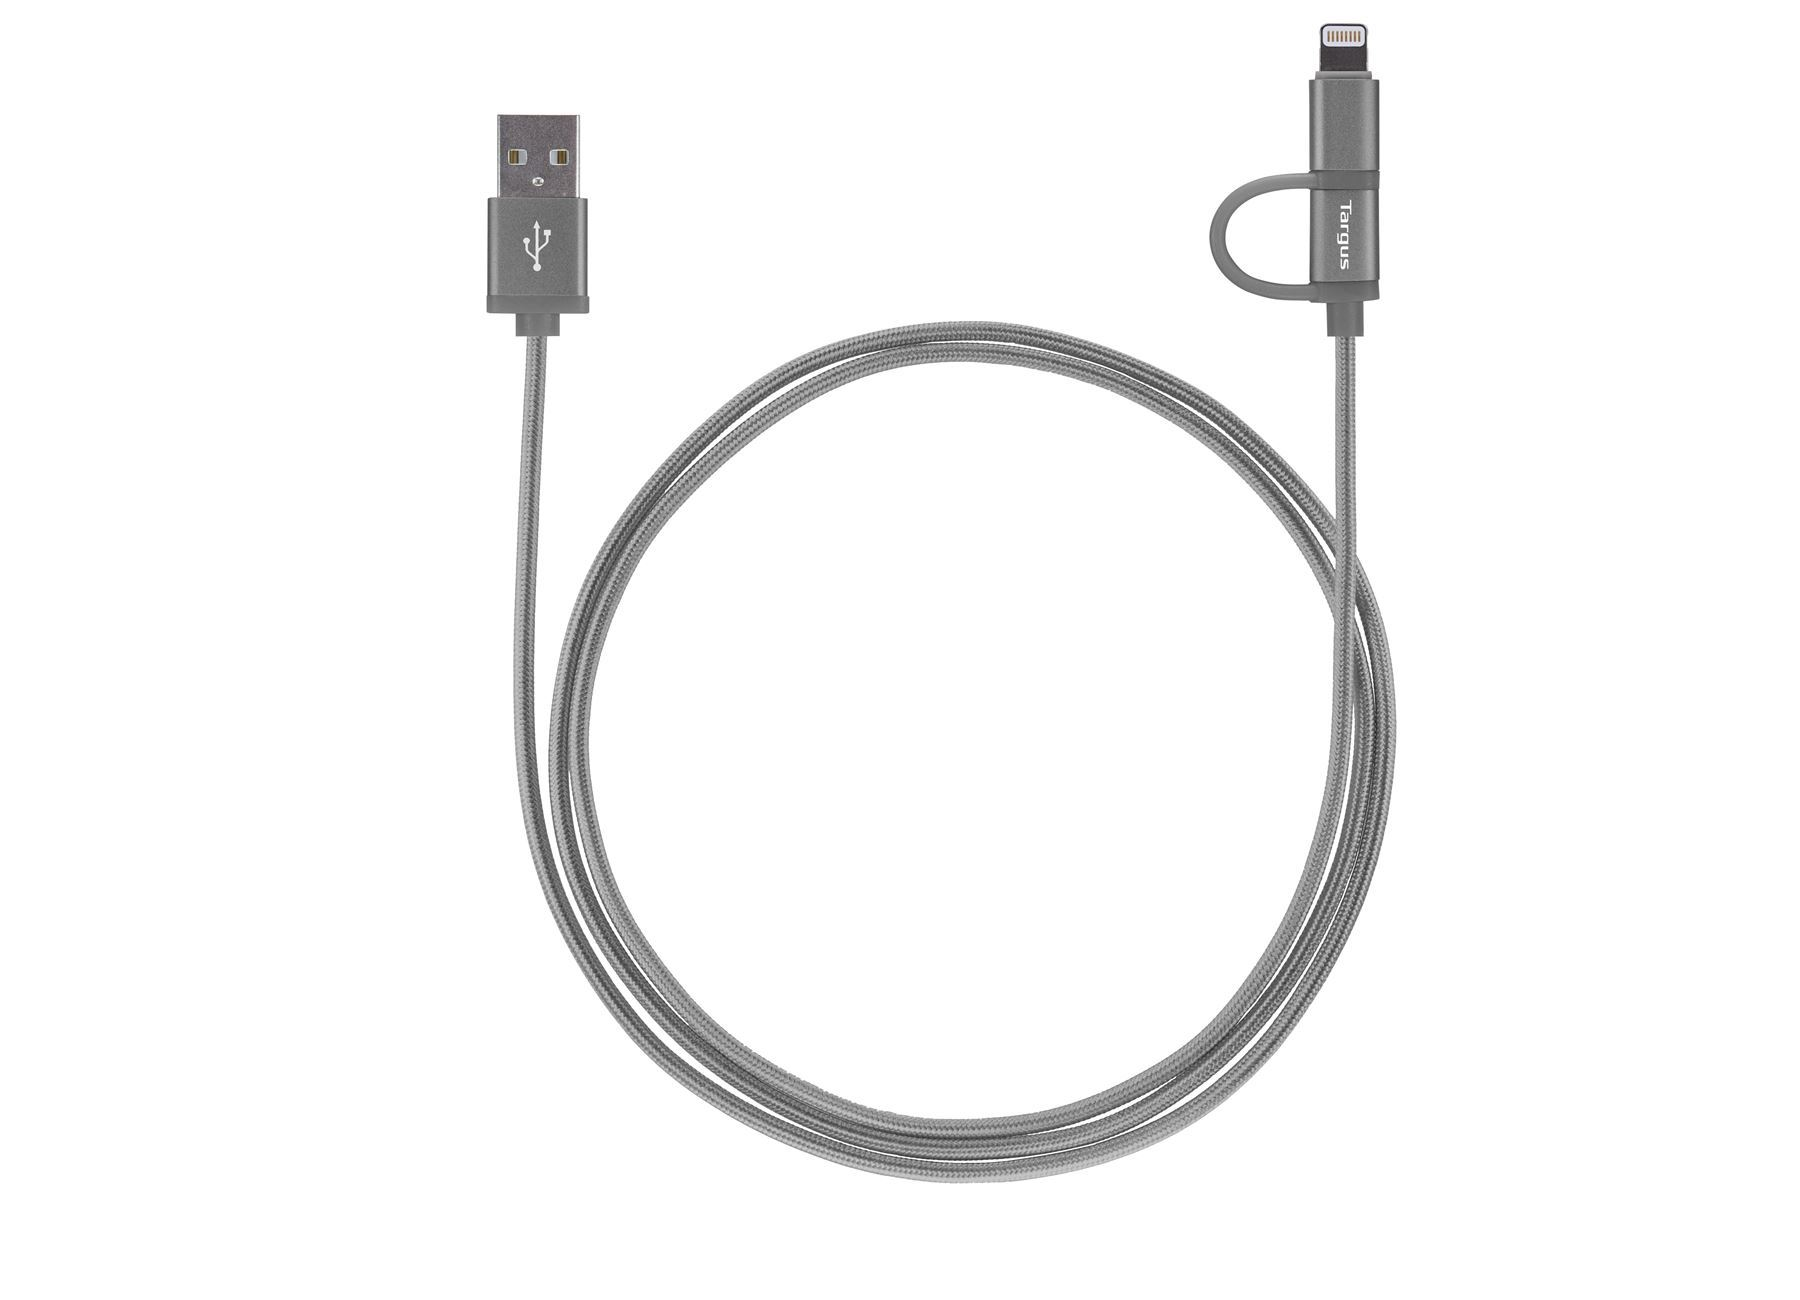 Aluminium Series 2 In 1 Lightning Cable Space Gray